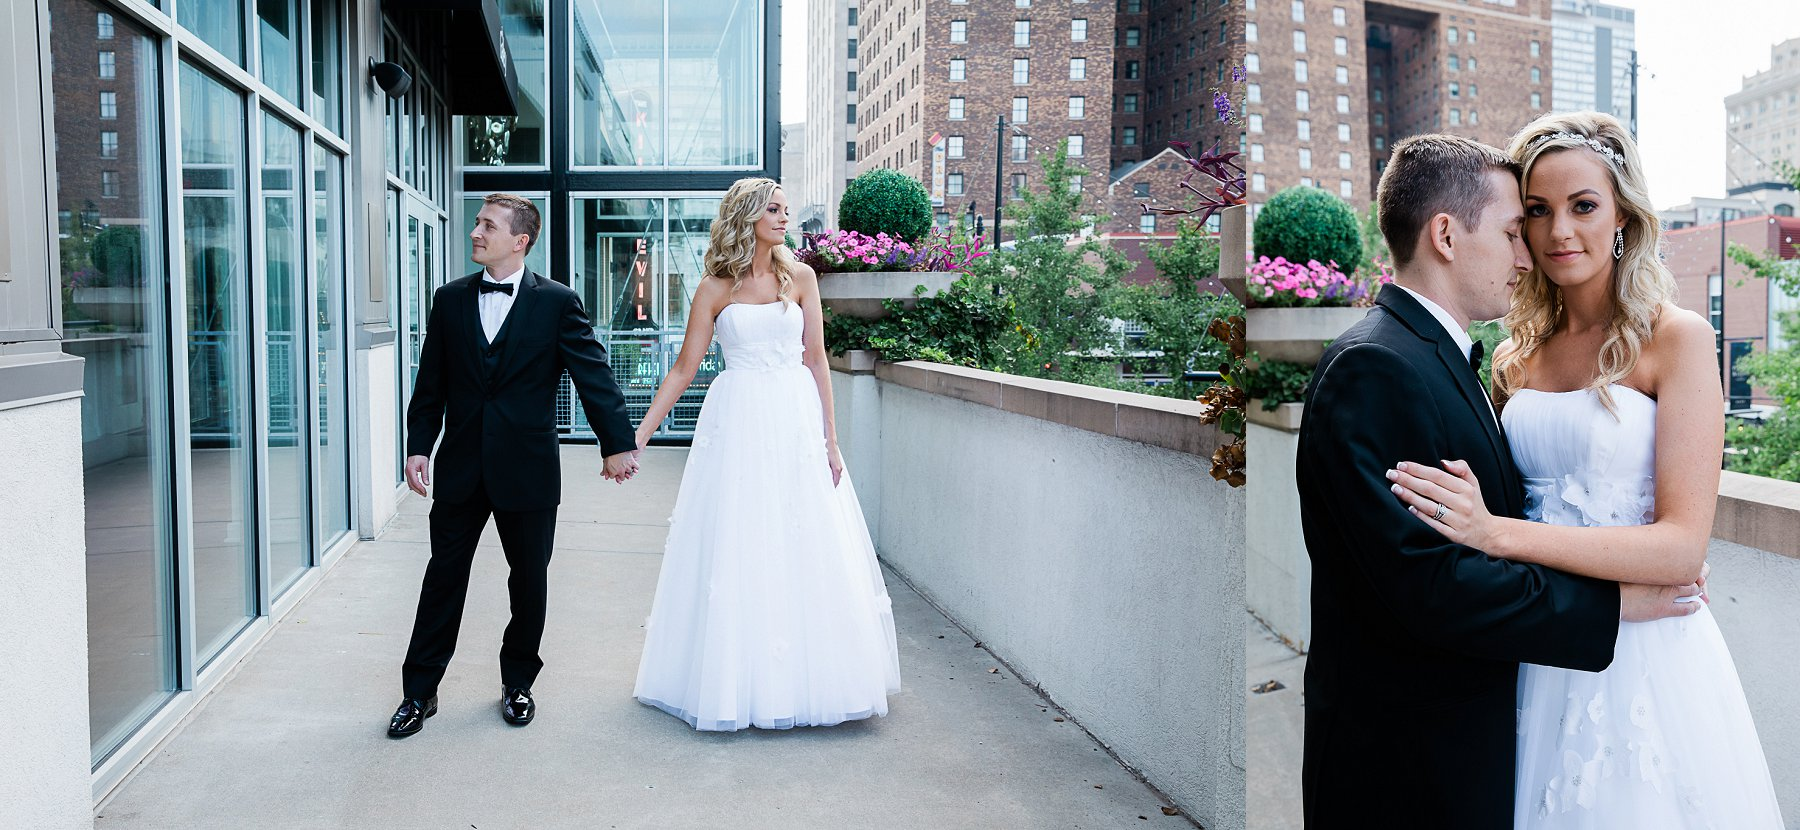 Bride and Groom portrait on balcony by Merry Ohler | Best Midwest Wedding Photographer